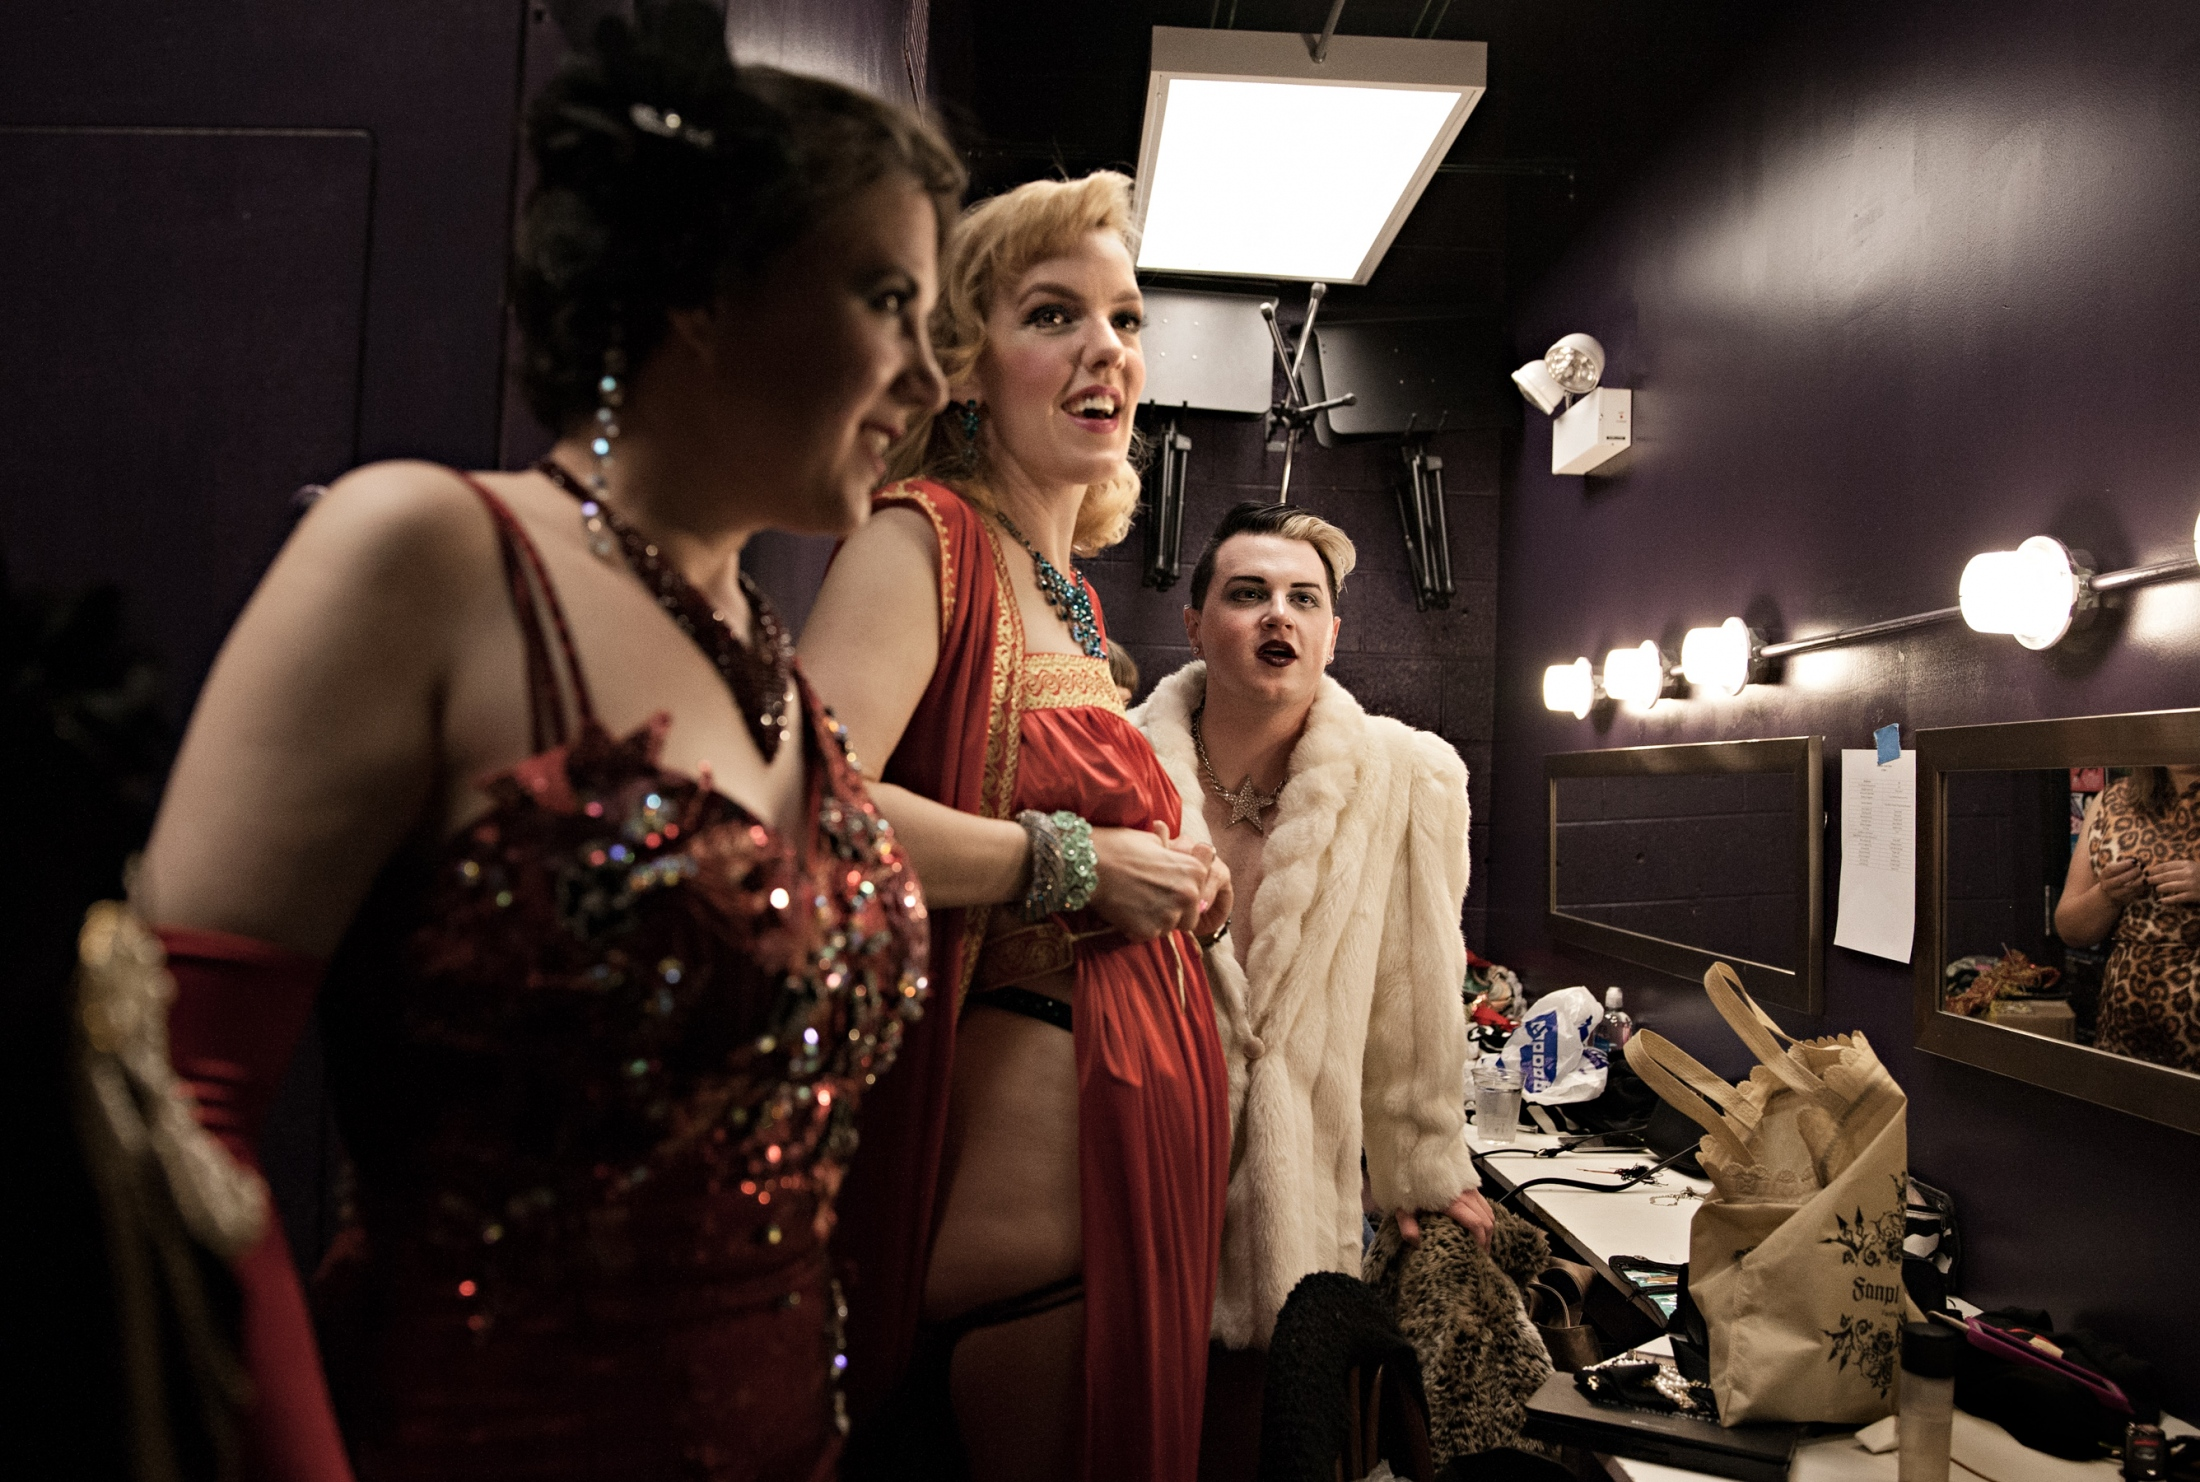 Sadie O'Swirl, Red Hot Annie and Willy LaQueue joke around at the end of a show while getting ready to go home.